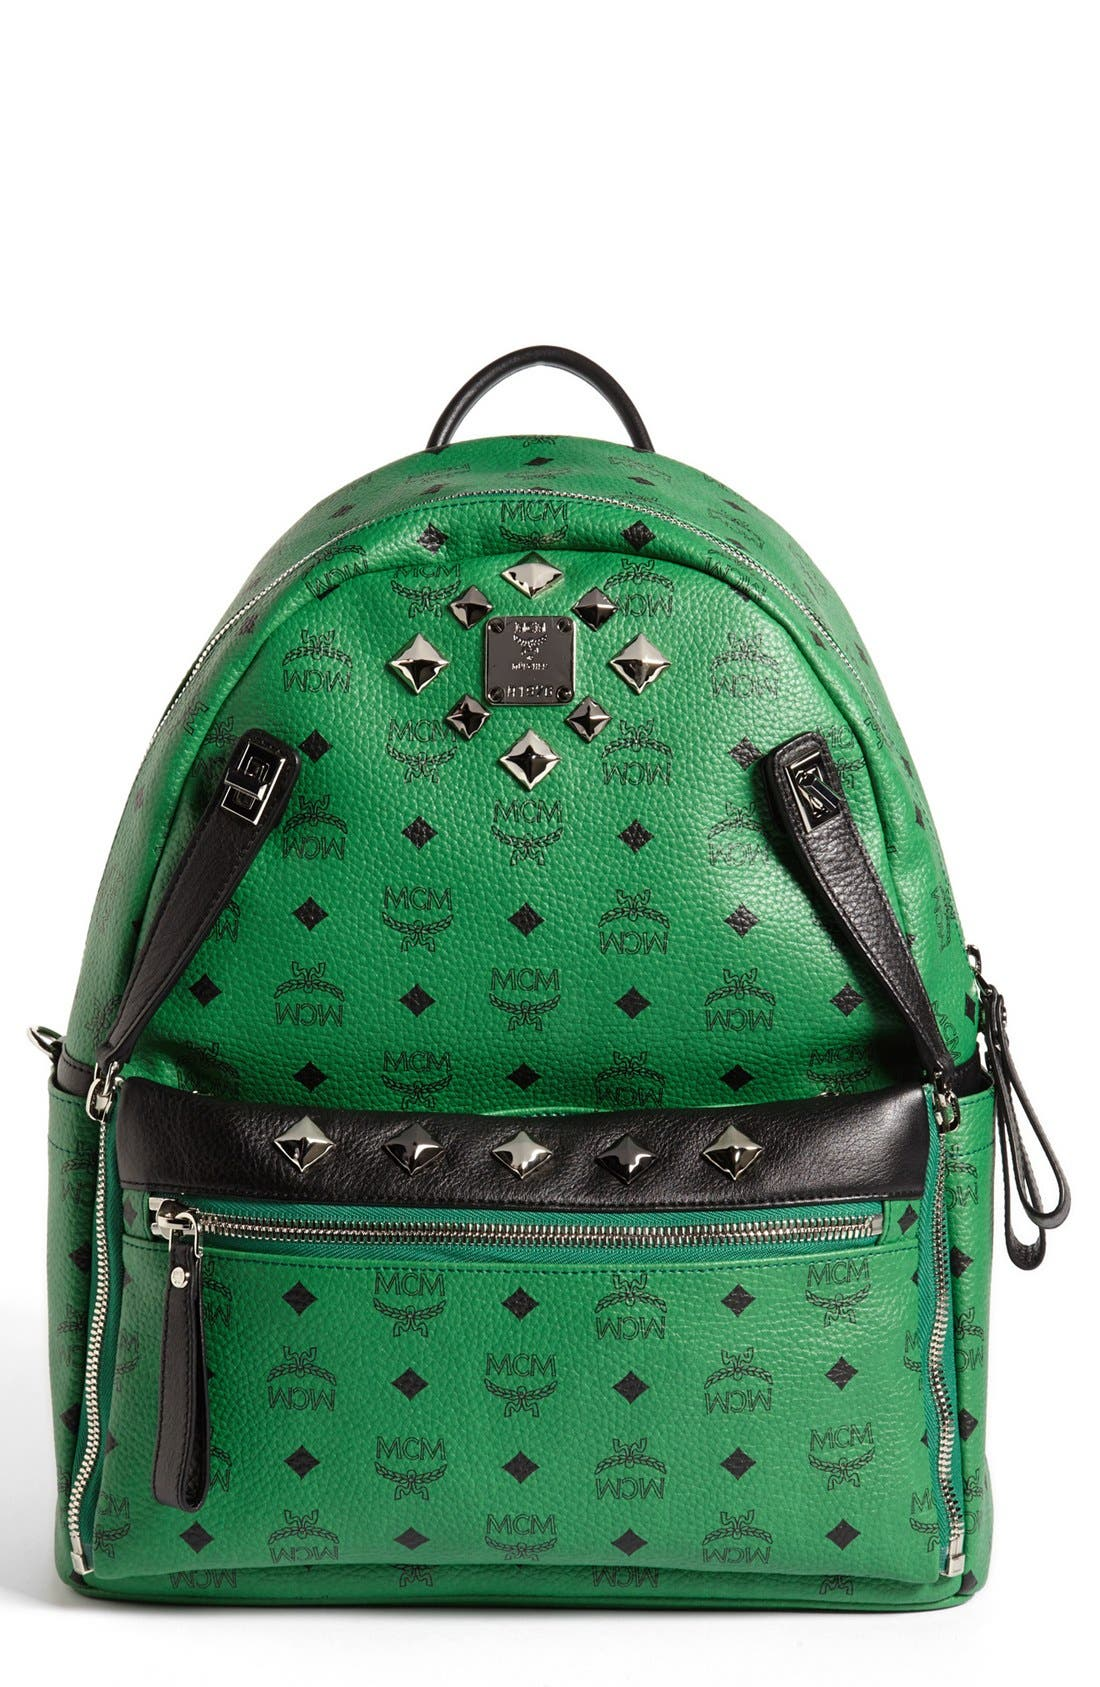 Alternate Image 1 Selected - MCM 'Studded - Medium' Coated Canvas Backpack